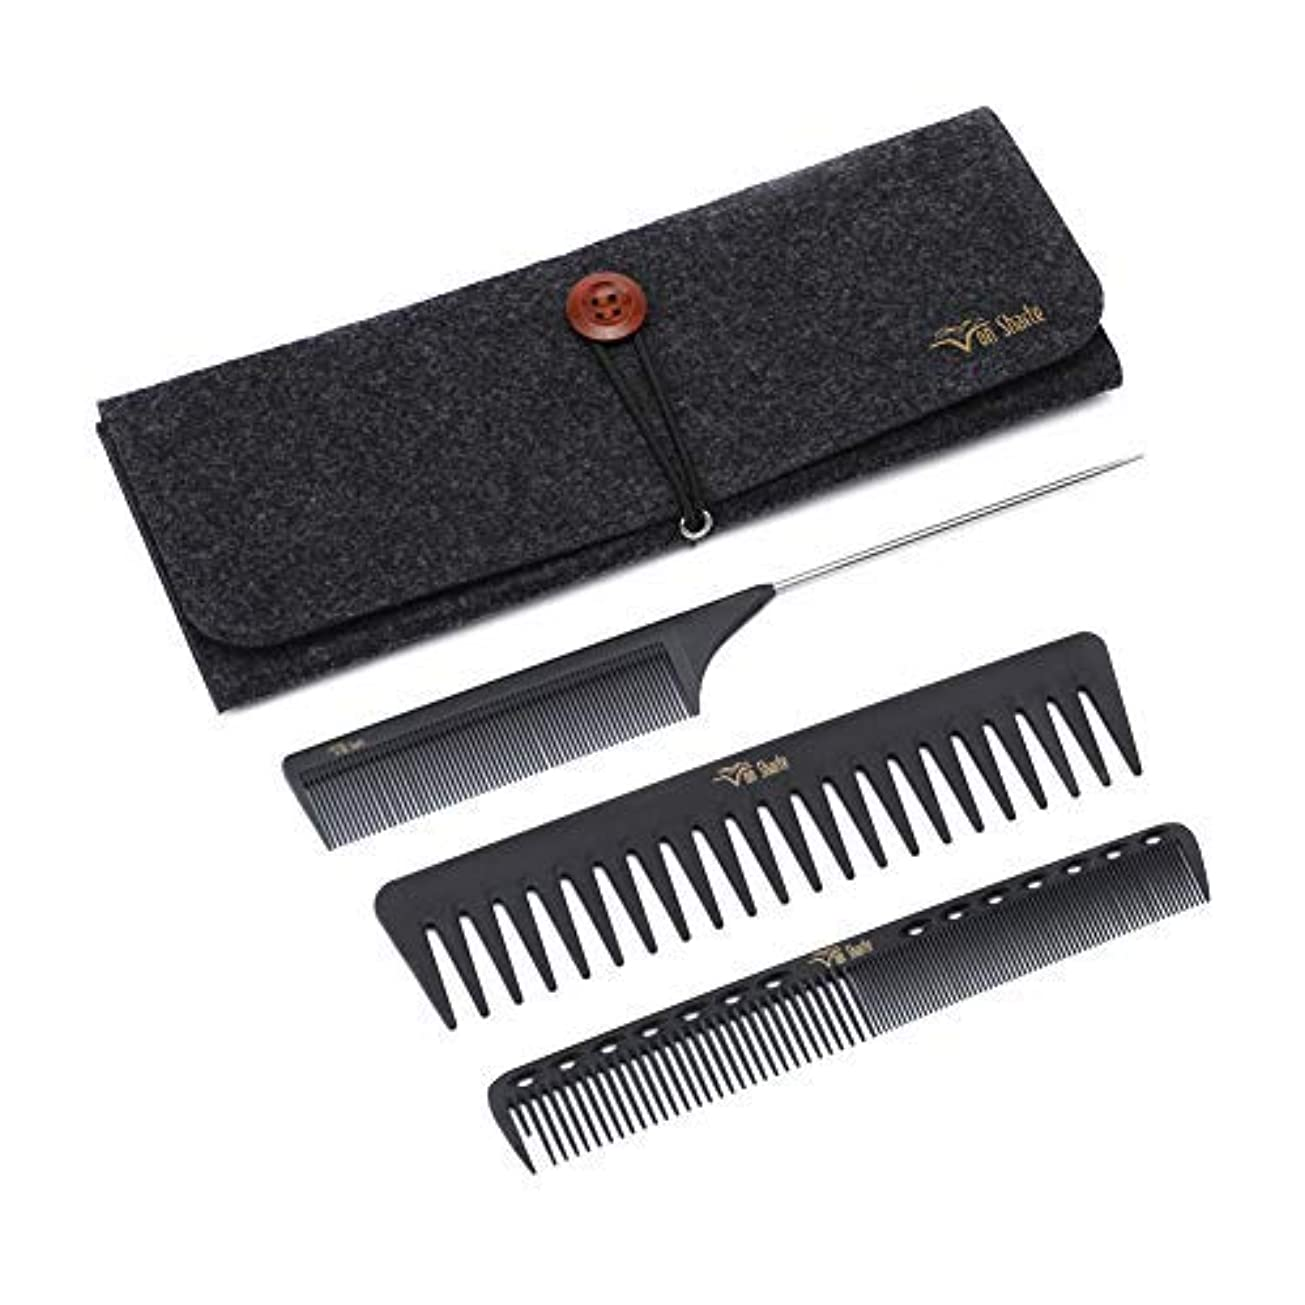 描写別の種をまくStyling Comb Set,Hairdresser Barber Comb Cutting Hair Comb Carbon Fiber Wide Tooth Comb Metal Rat Pin Tail Comb...